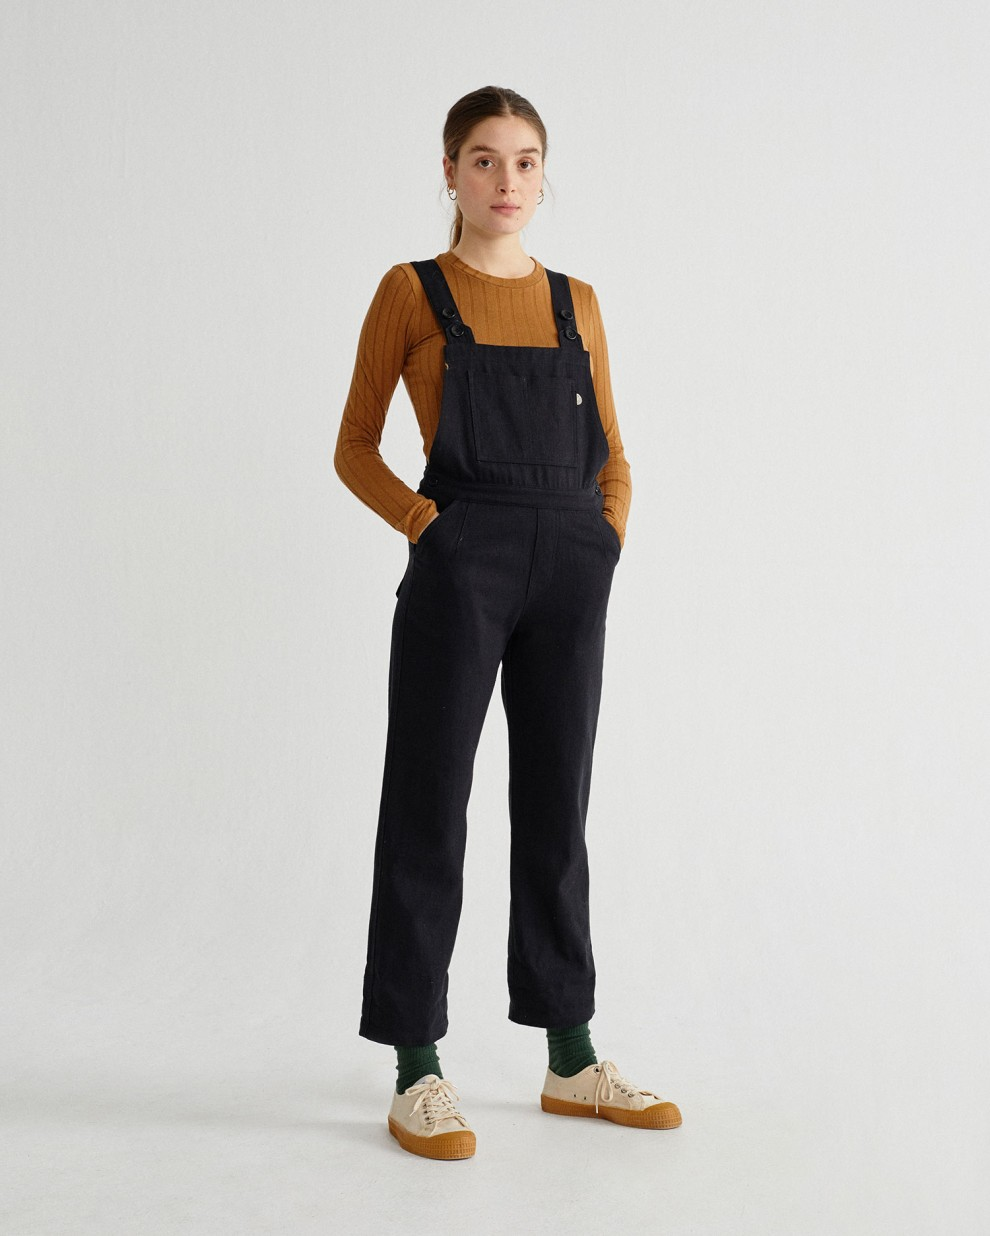 BLACK HEMP VENUS OVERALL